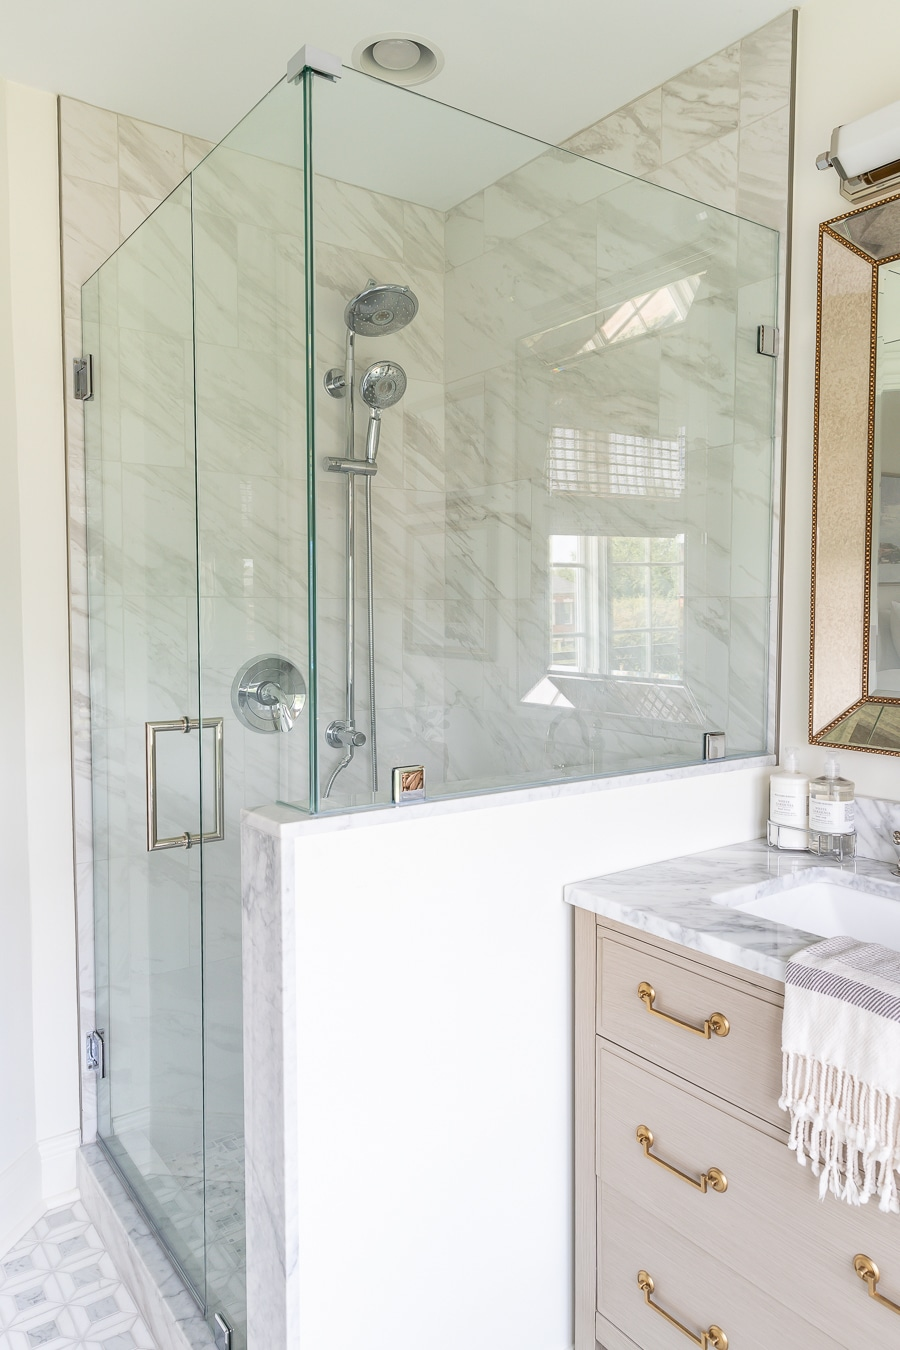 Gorgeous bathroom renovation with marble tile and glass shower